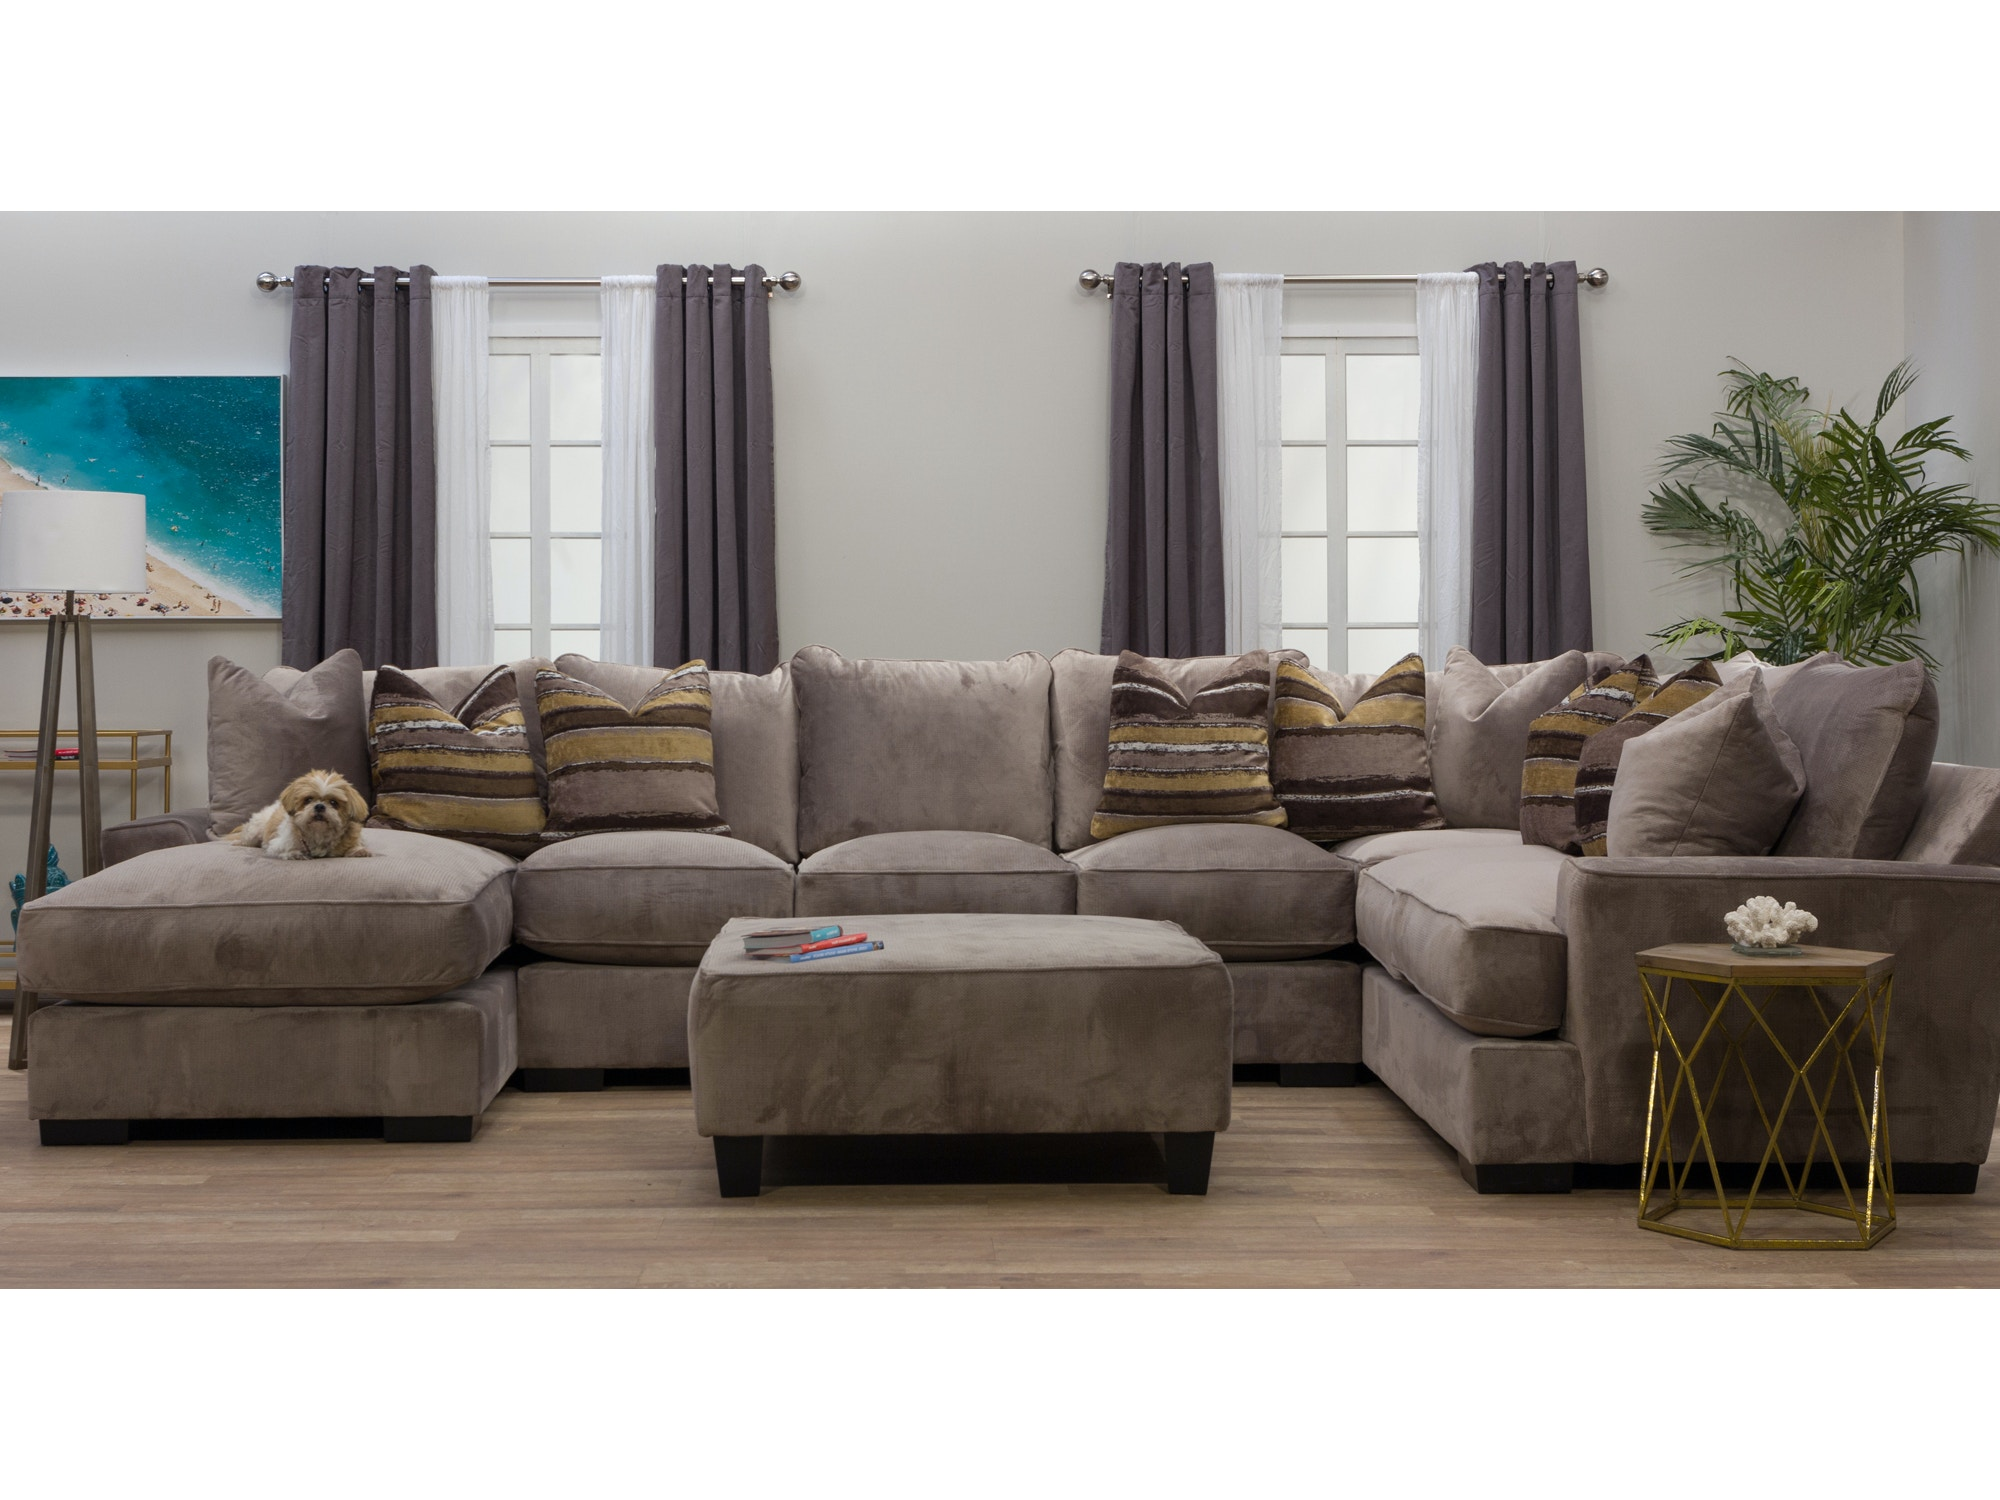 Serendipity Left Chaise Sectional with Ottoman 359834